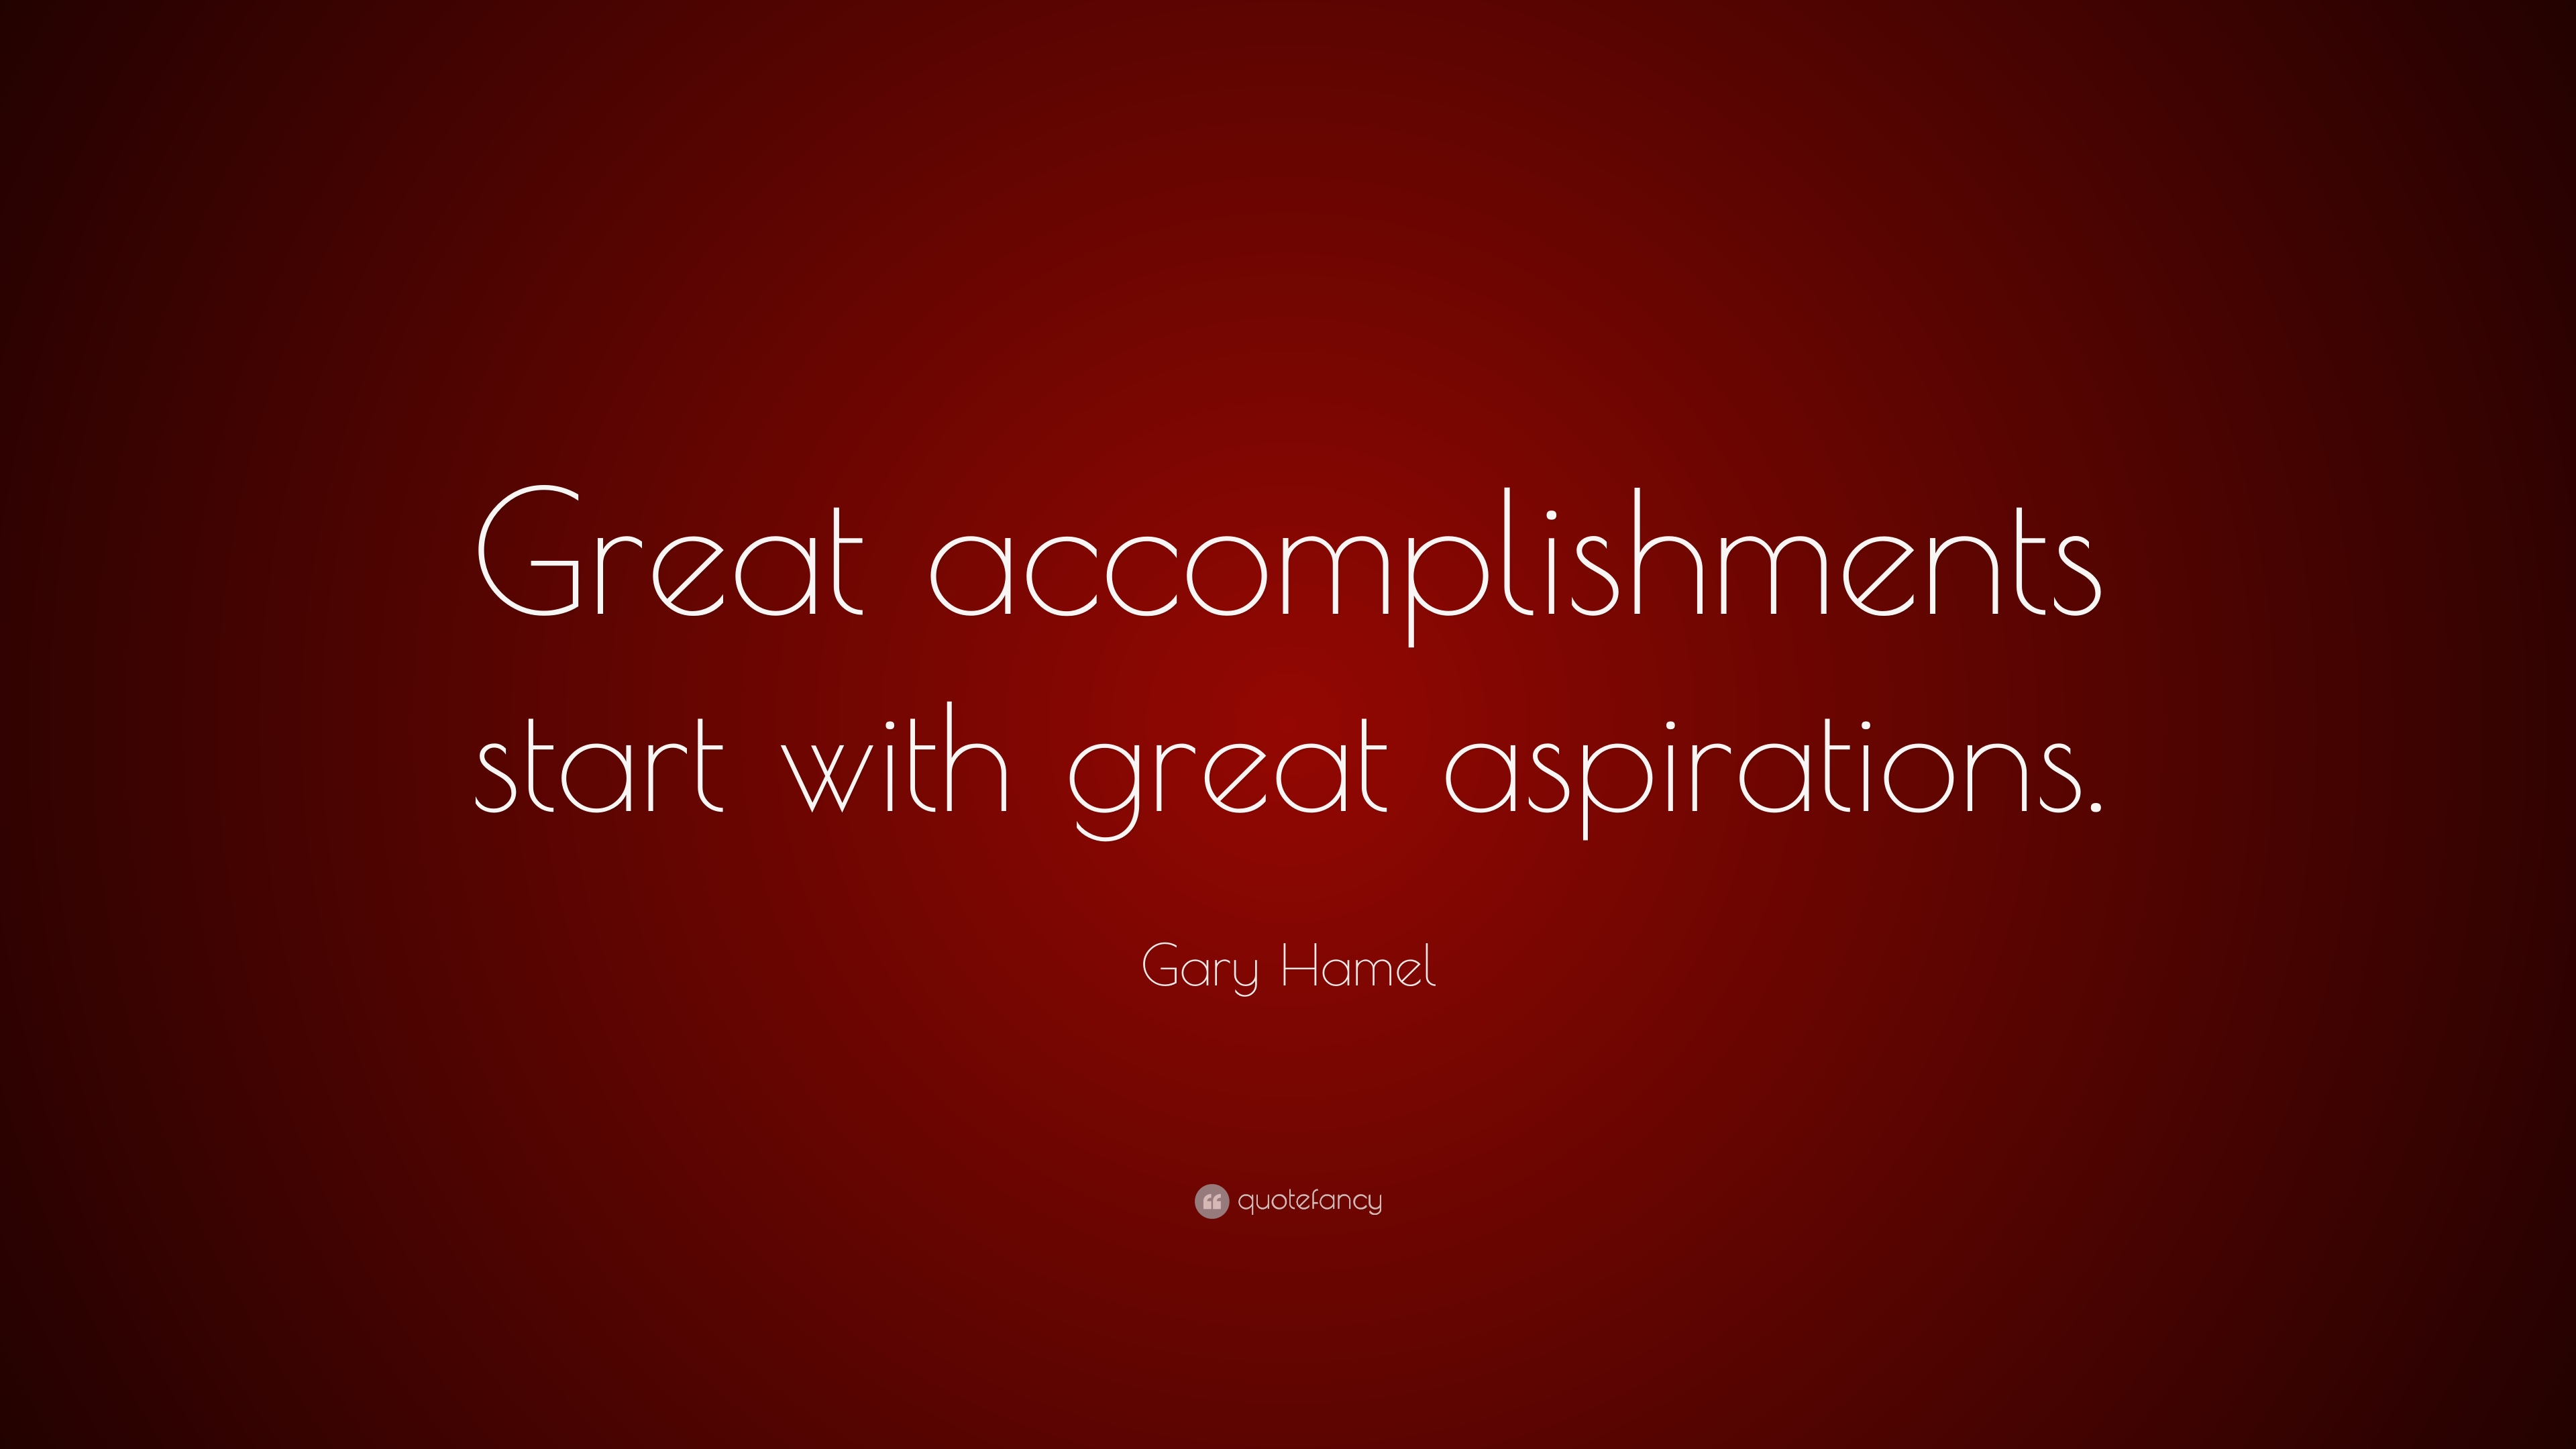 """Gary Hamel Quote: """"Great accomplishments start with great aspirations."""" (7  wallpapers) - Quotefancy"""